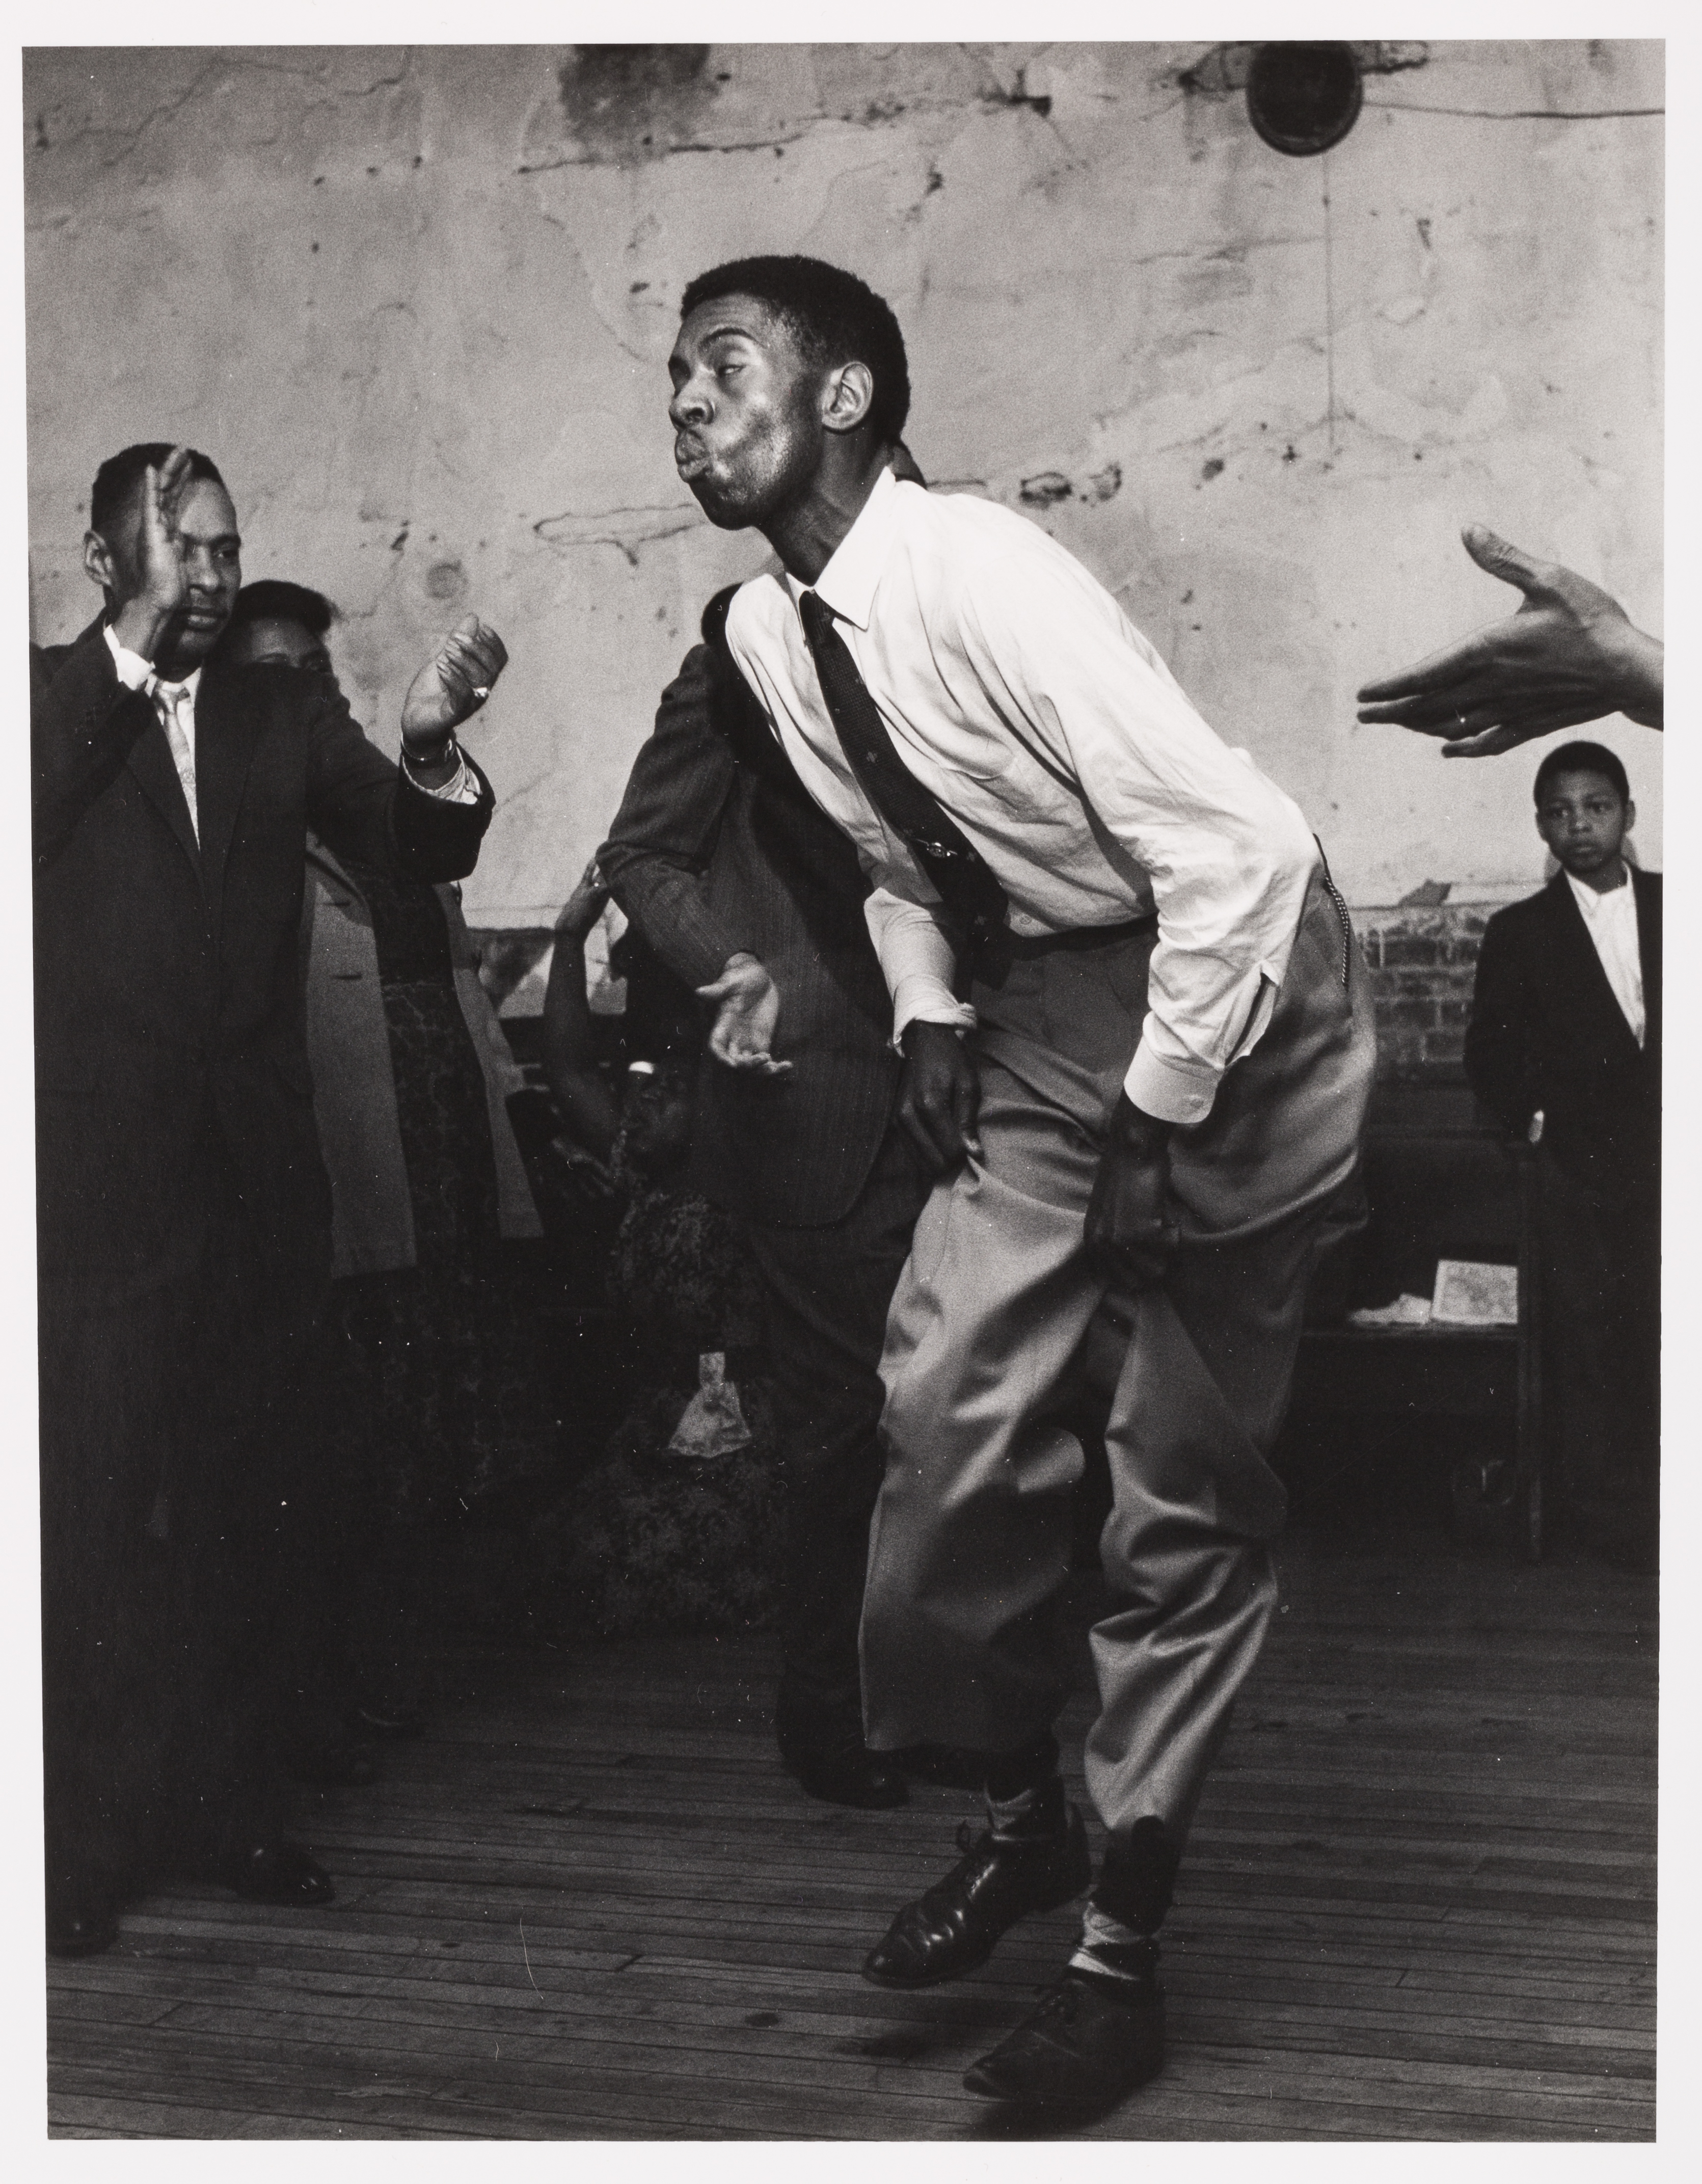 Black-and-white photo of an African-American man dancing and people around him clapping